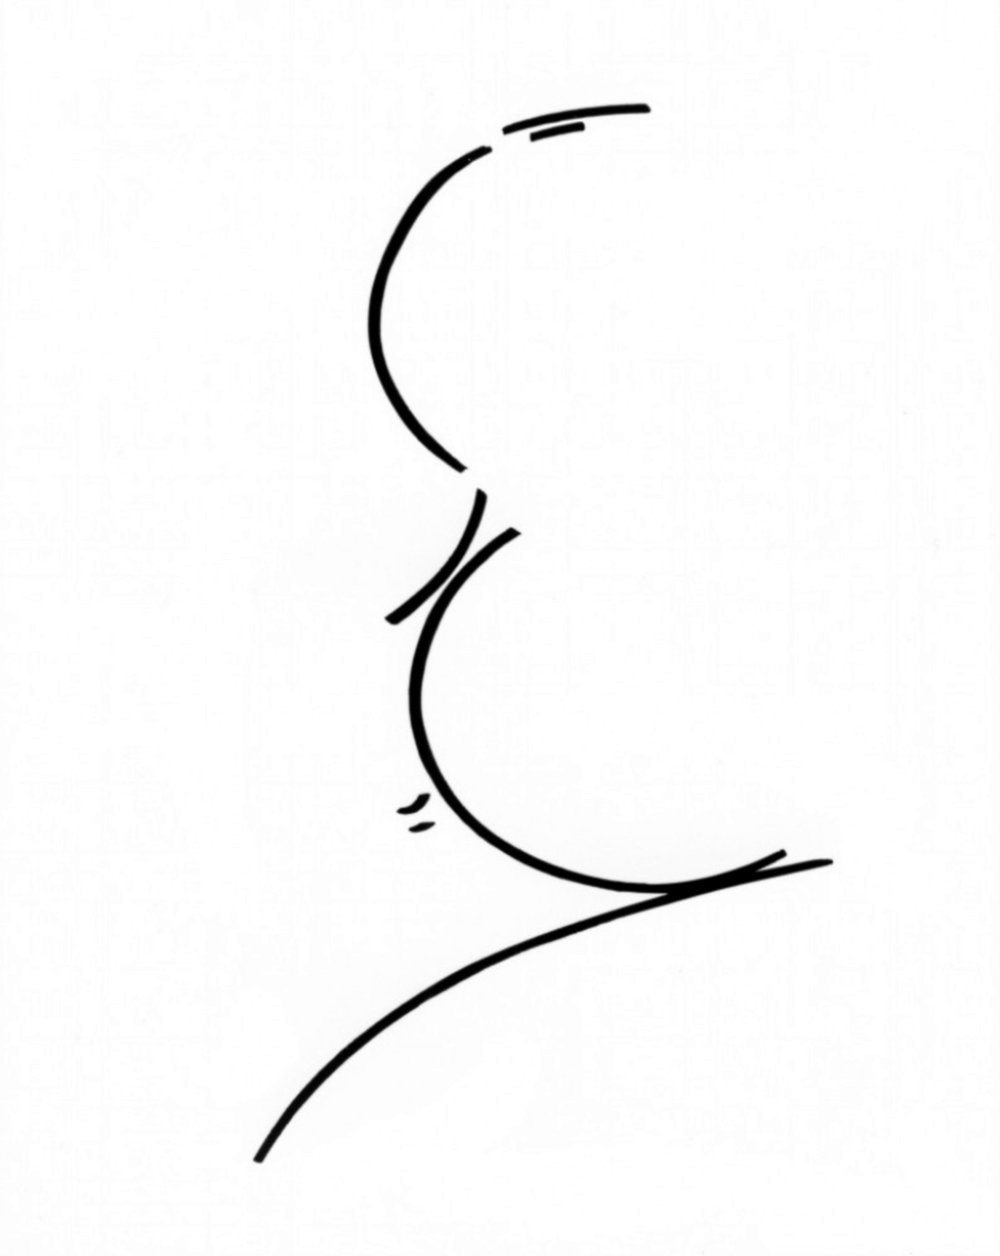 Alfred Hitchcock caricature_01.jpg